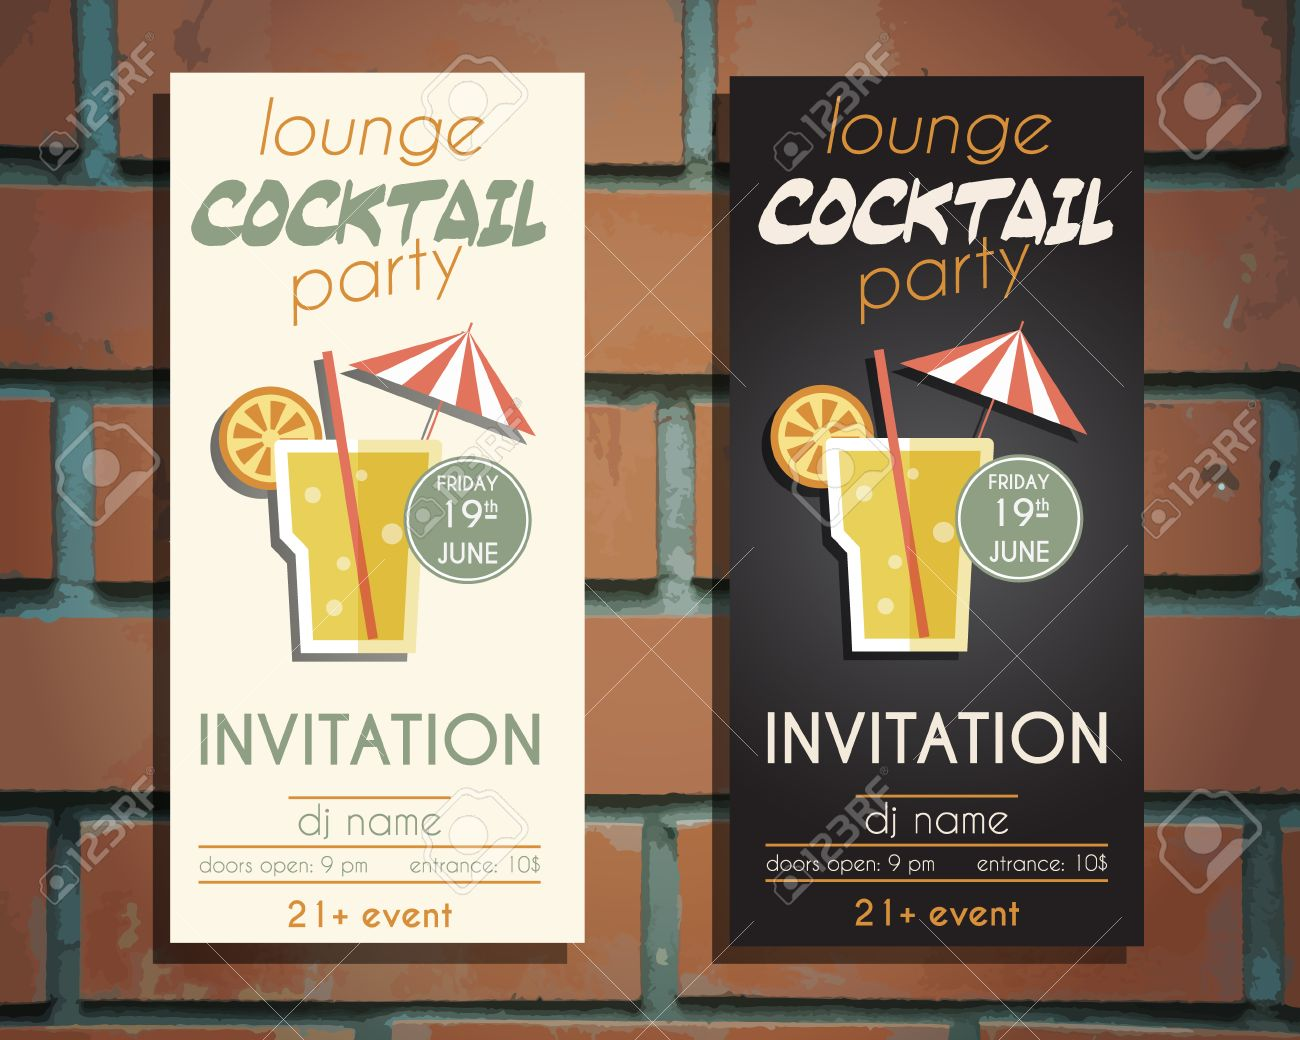 lounge cocktail party flyer invitation template screw driver lounge cocktail party flyer invitation template screw driver cocktail vintage design for bar or